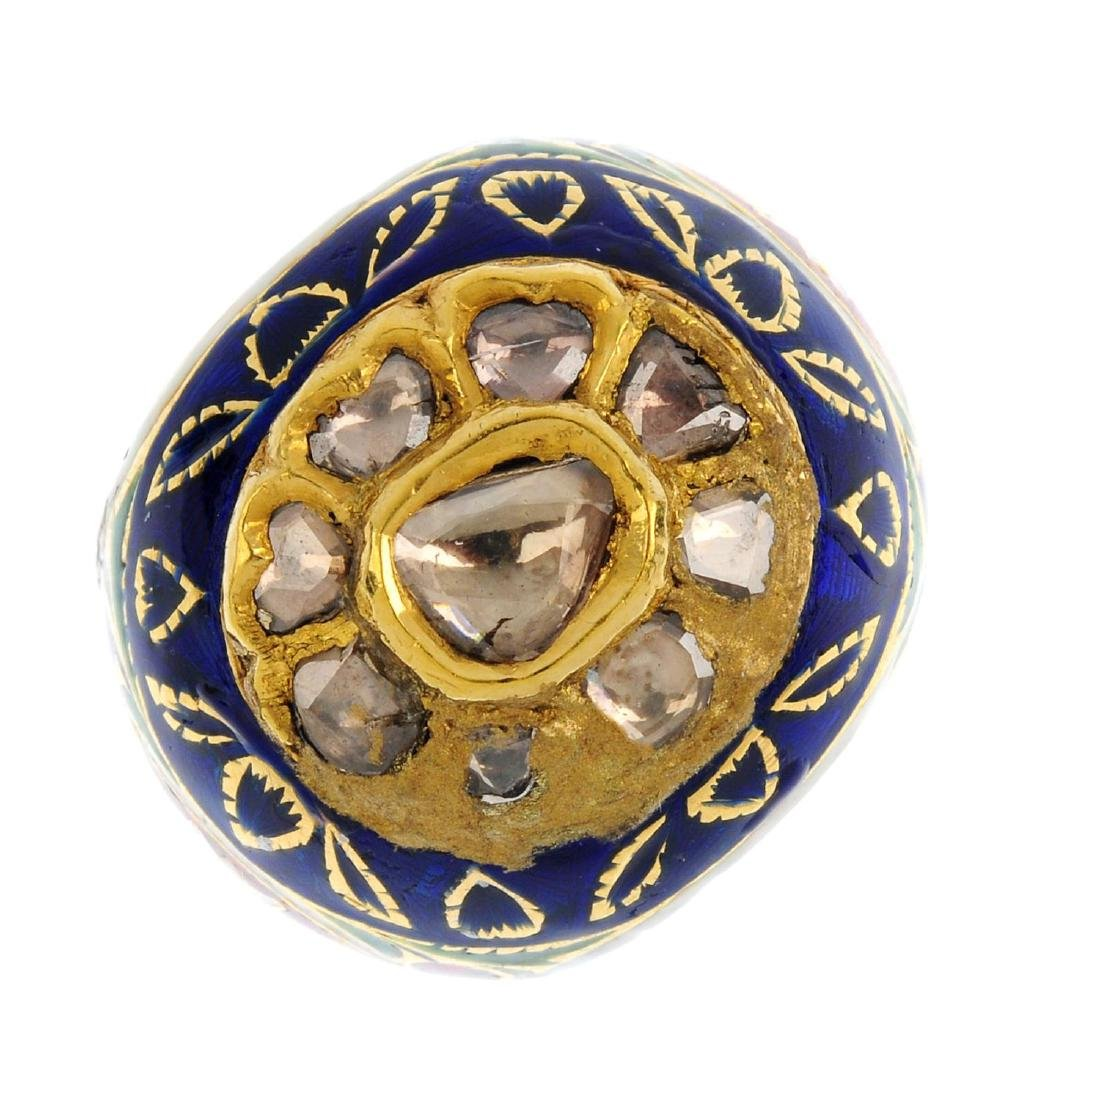 A diamond and enamel dress ring. The rose-cut diamond